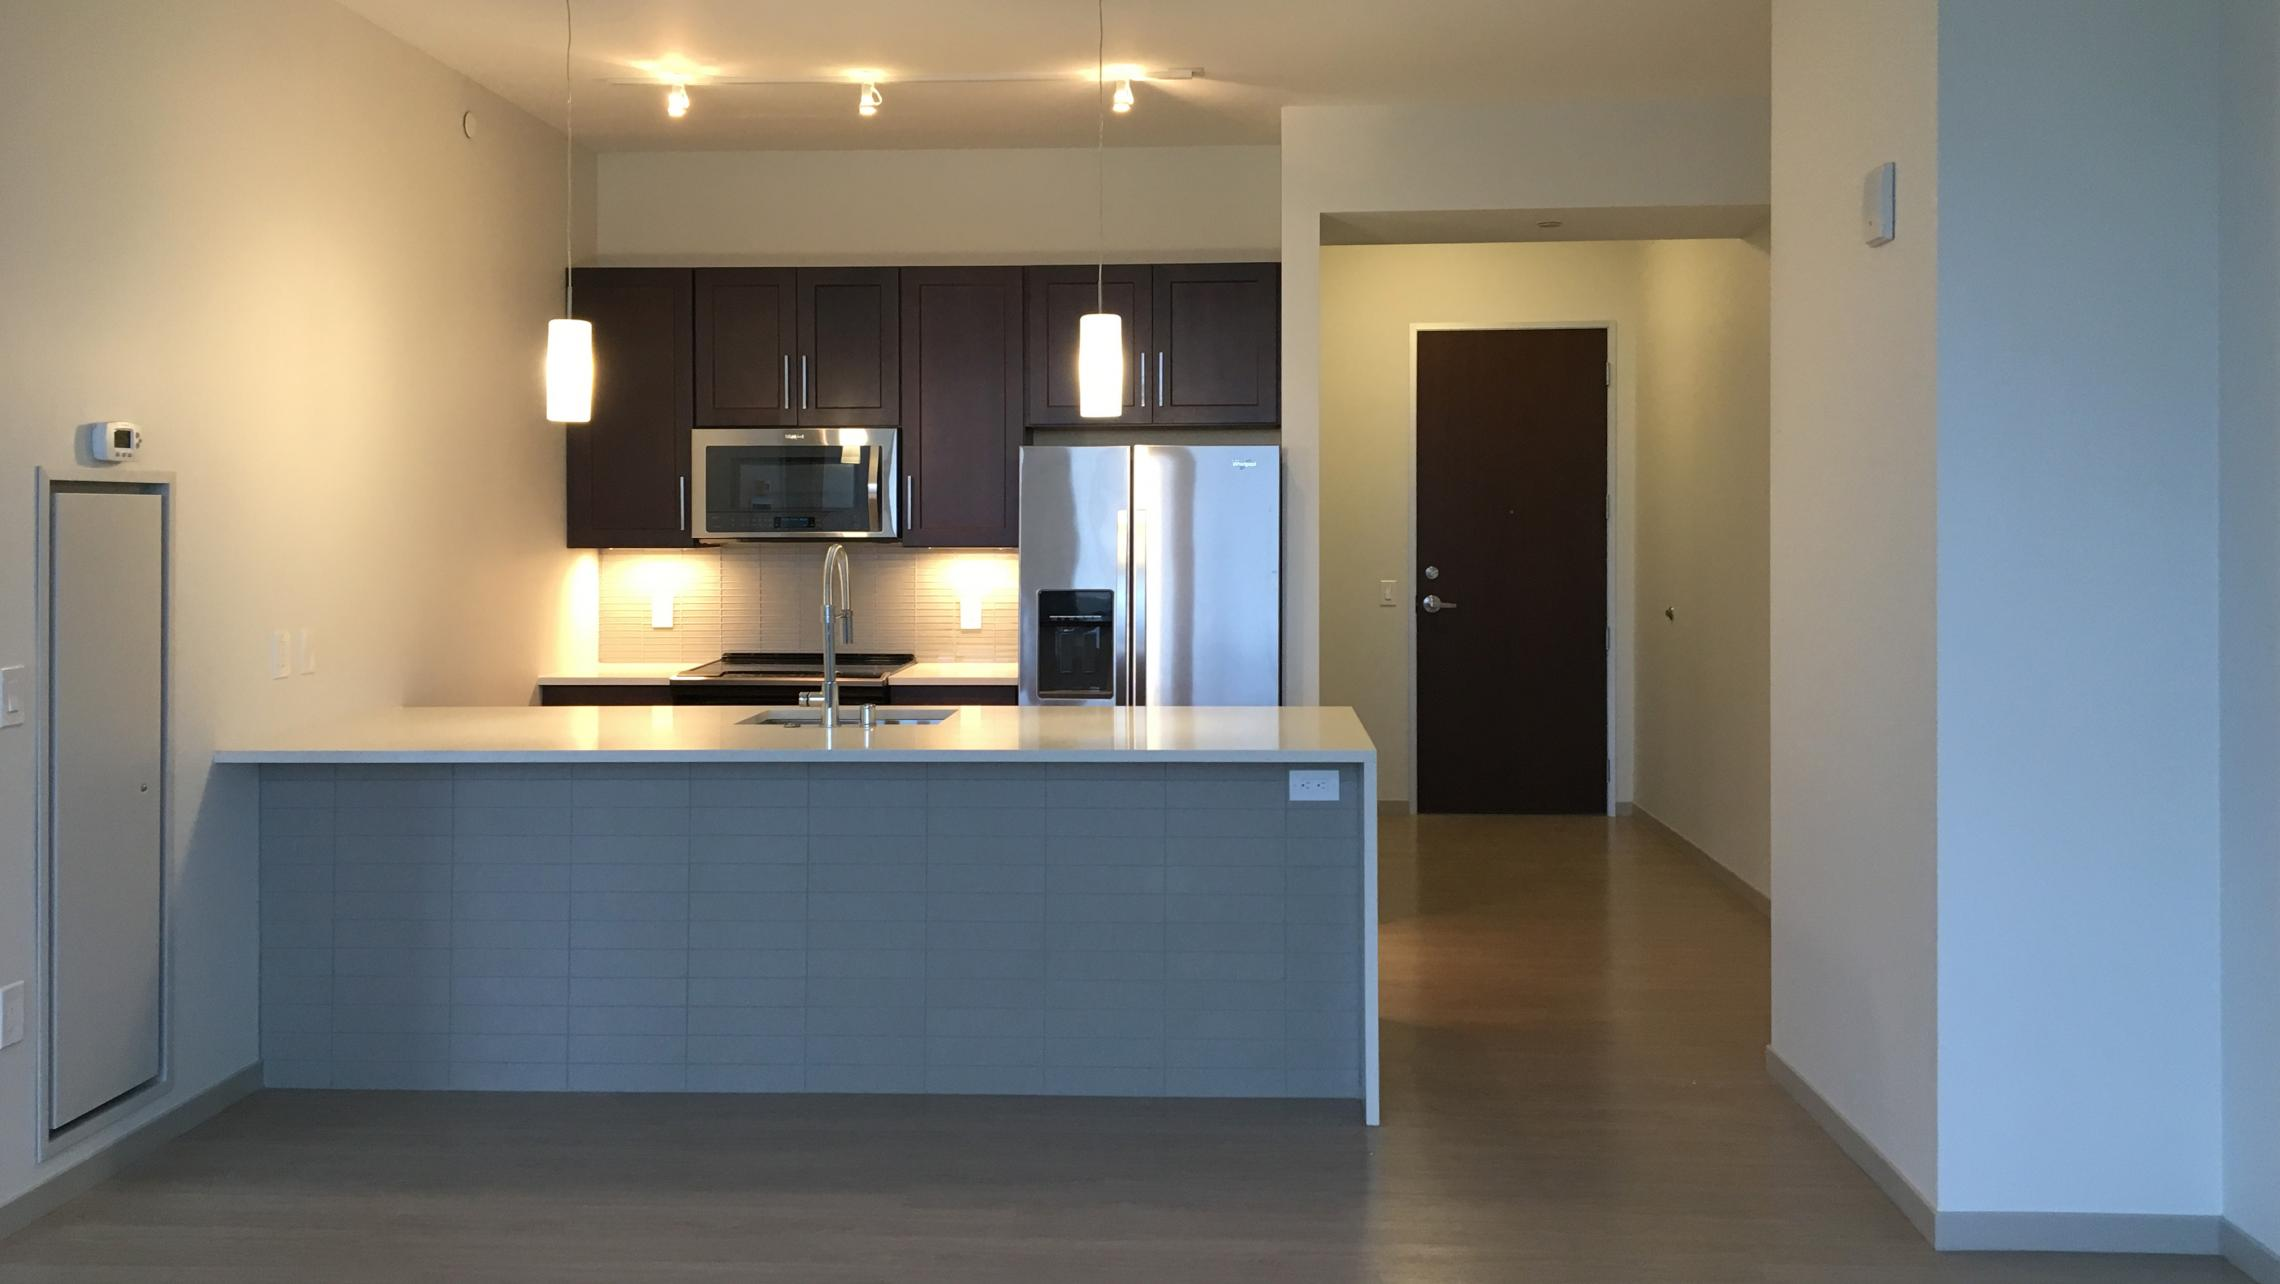 The-Pressman-Apartment-911-Upsclae-Modern-Downtown-Lake-View-Top-Floor-Amenities-Fitness-Lounge-Office-Luxury-Finishes-Design-Lifestyle-Capitol-Square